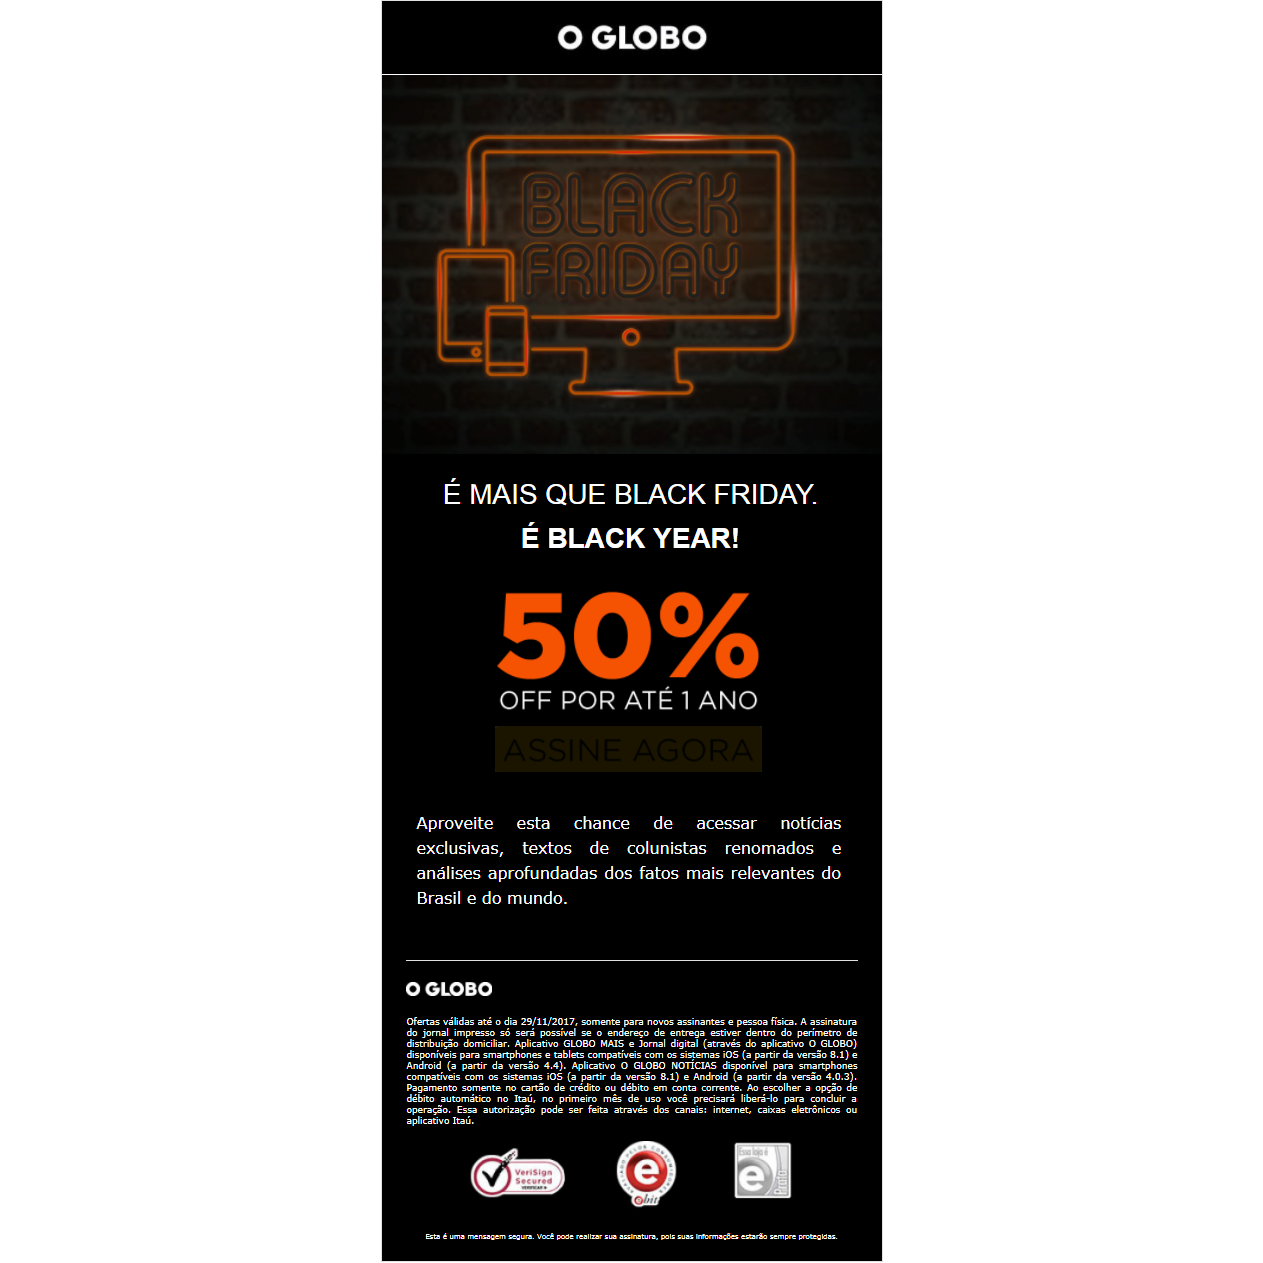 O Globo Black Friday promotion